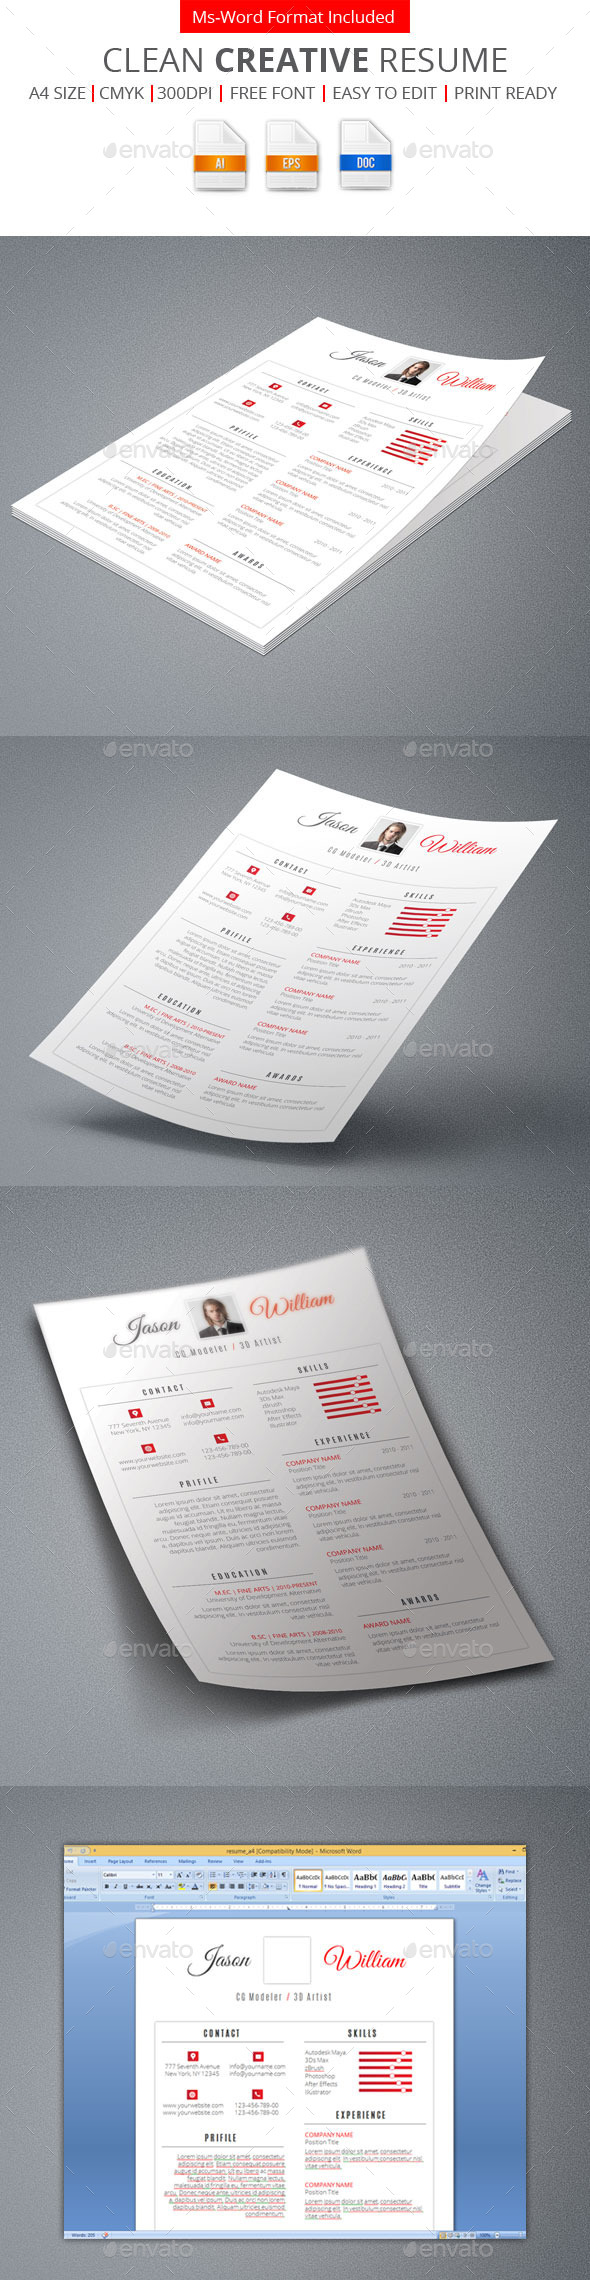 GraphicRiver Clean Creative Resume 9462833